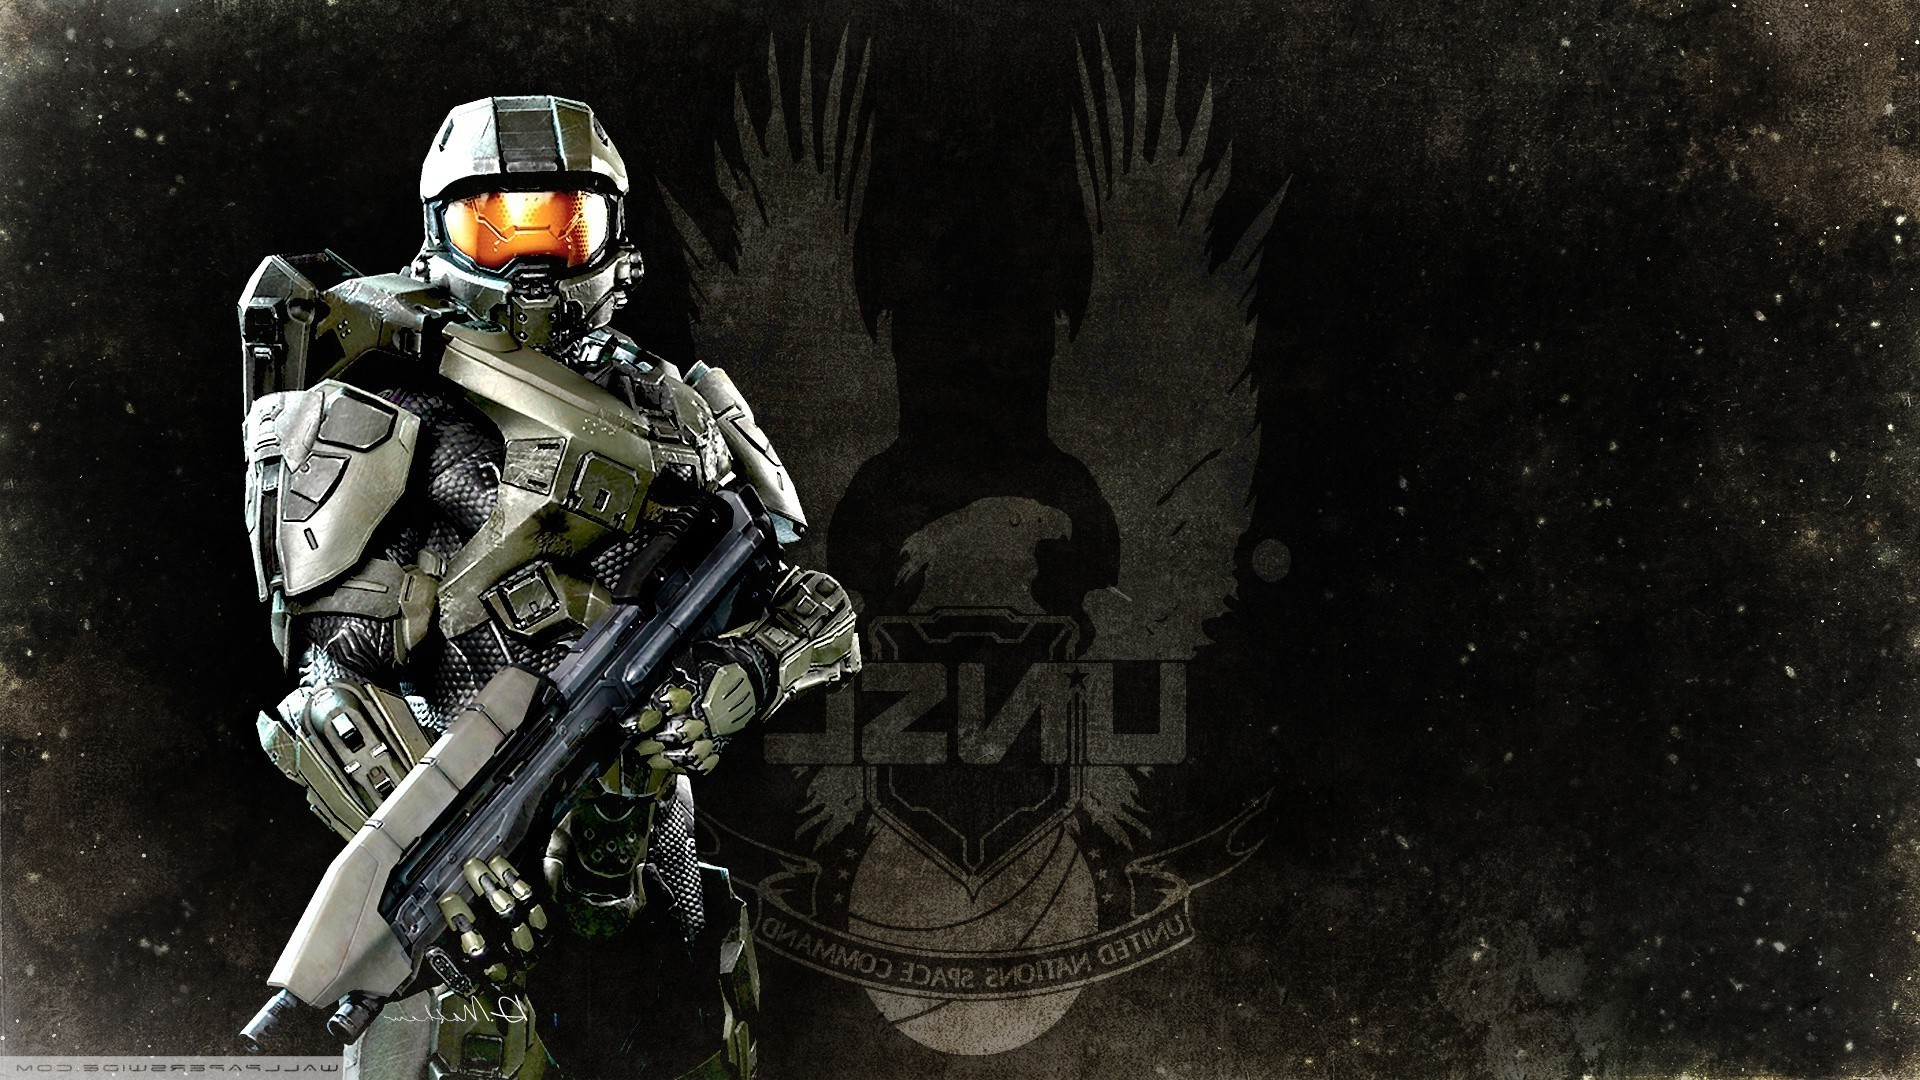 Res: 1920x1080, 1920x1200 Wallpapers For > Halo 3 Wallpaper Master Chief And Arbiter